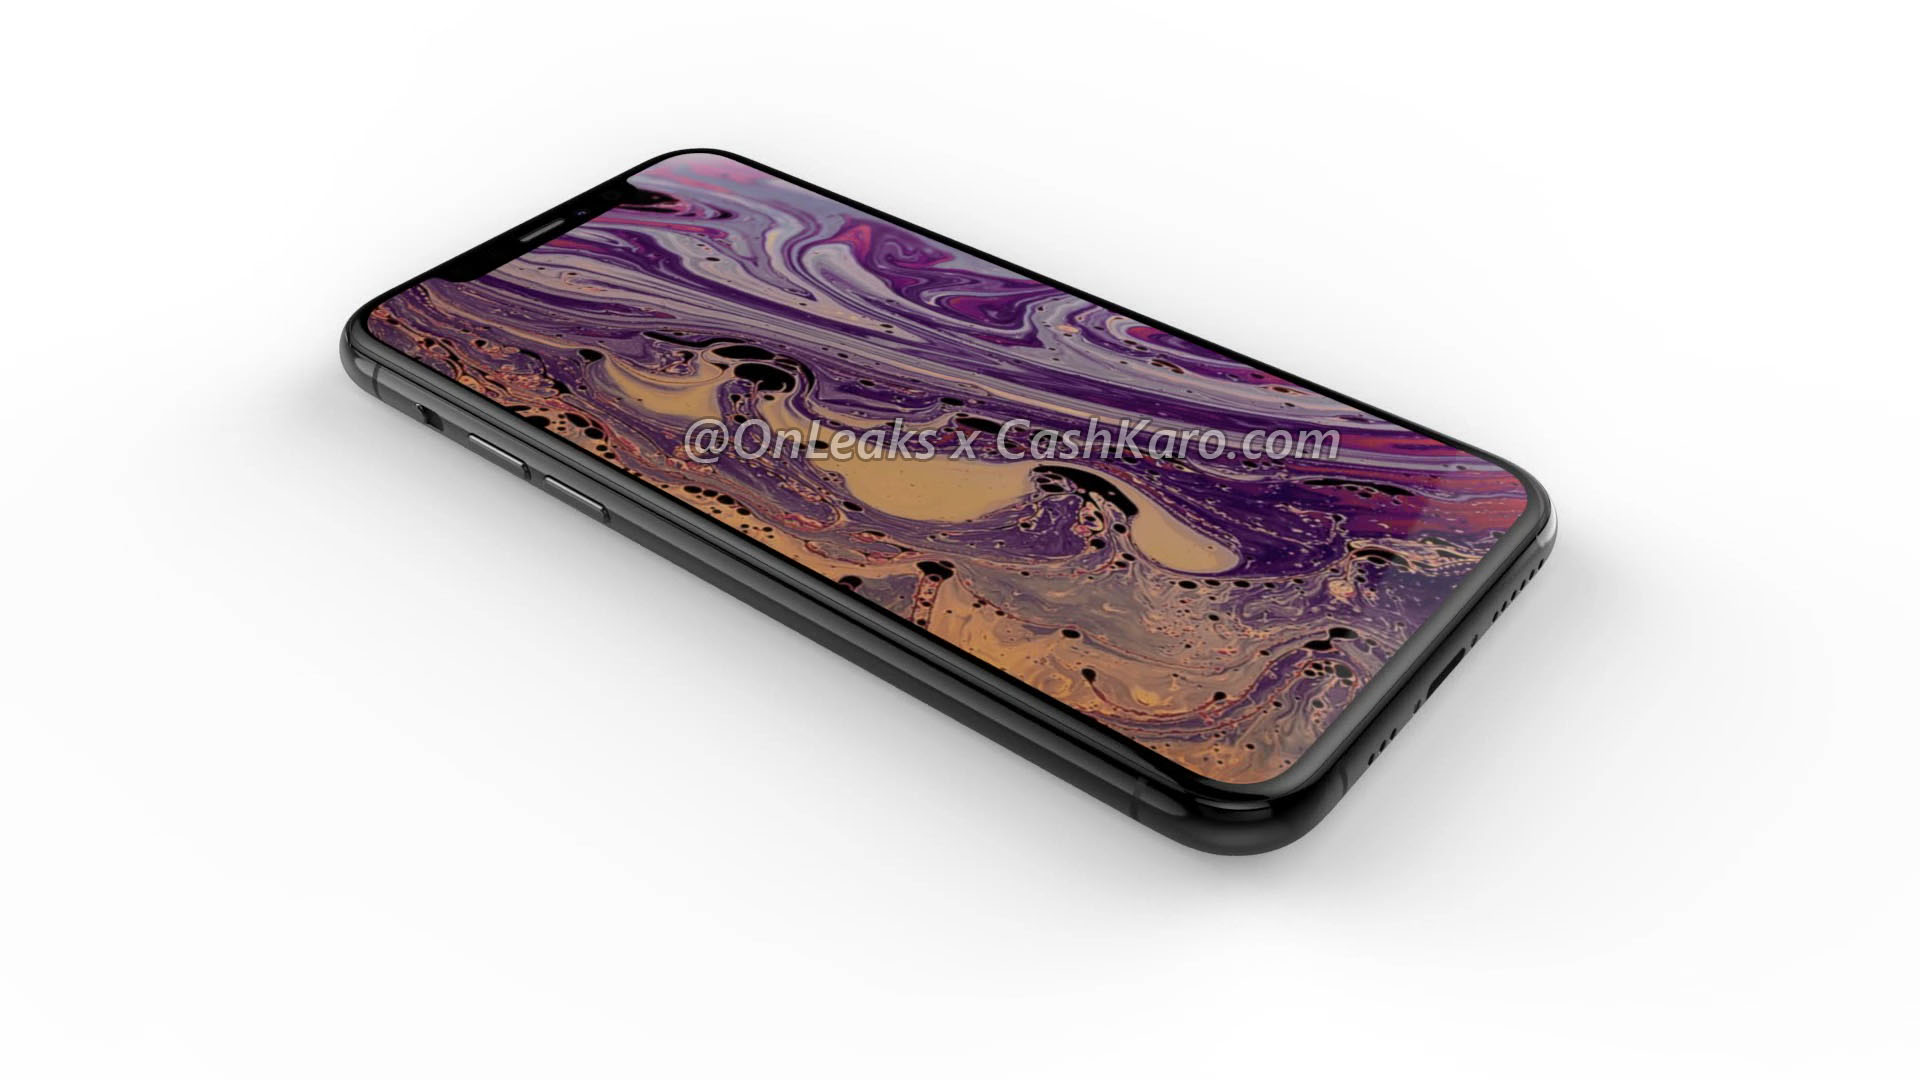 Iphone Xi Renders New Back Glass Design Img 9